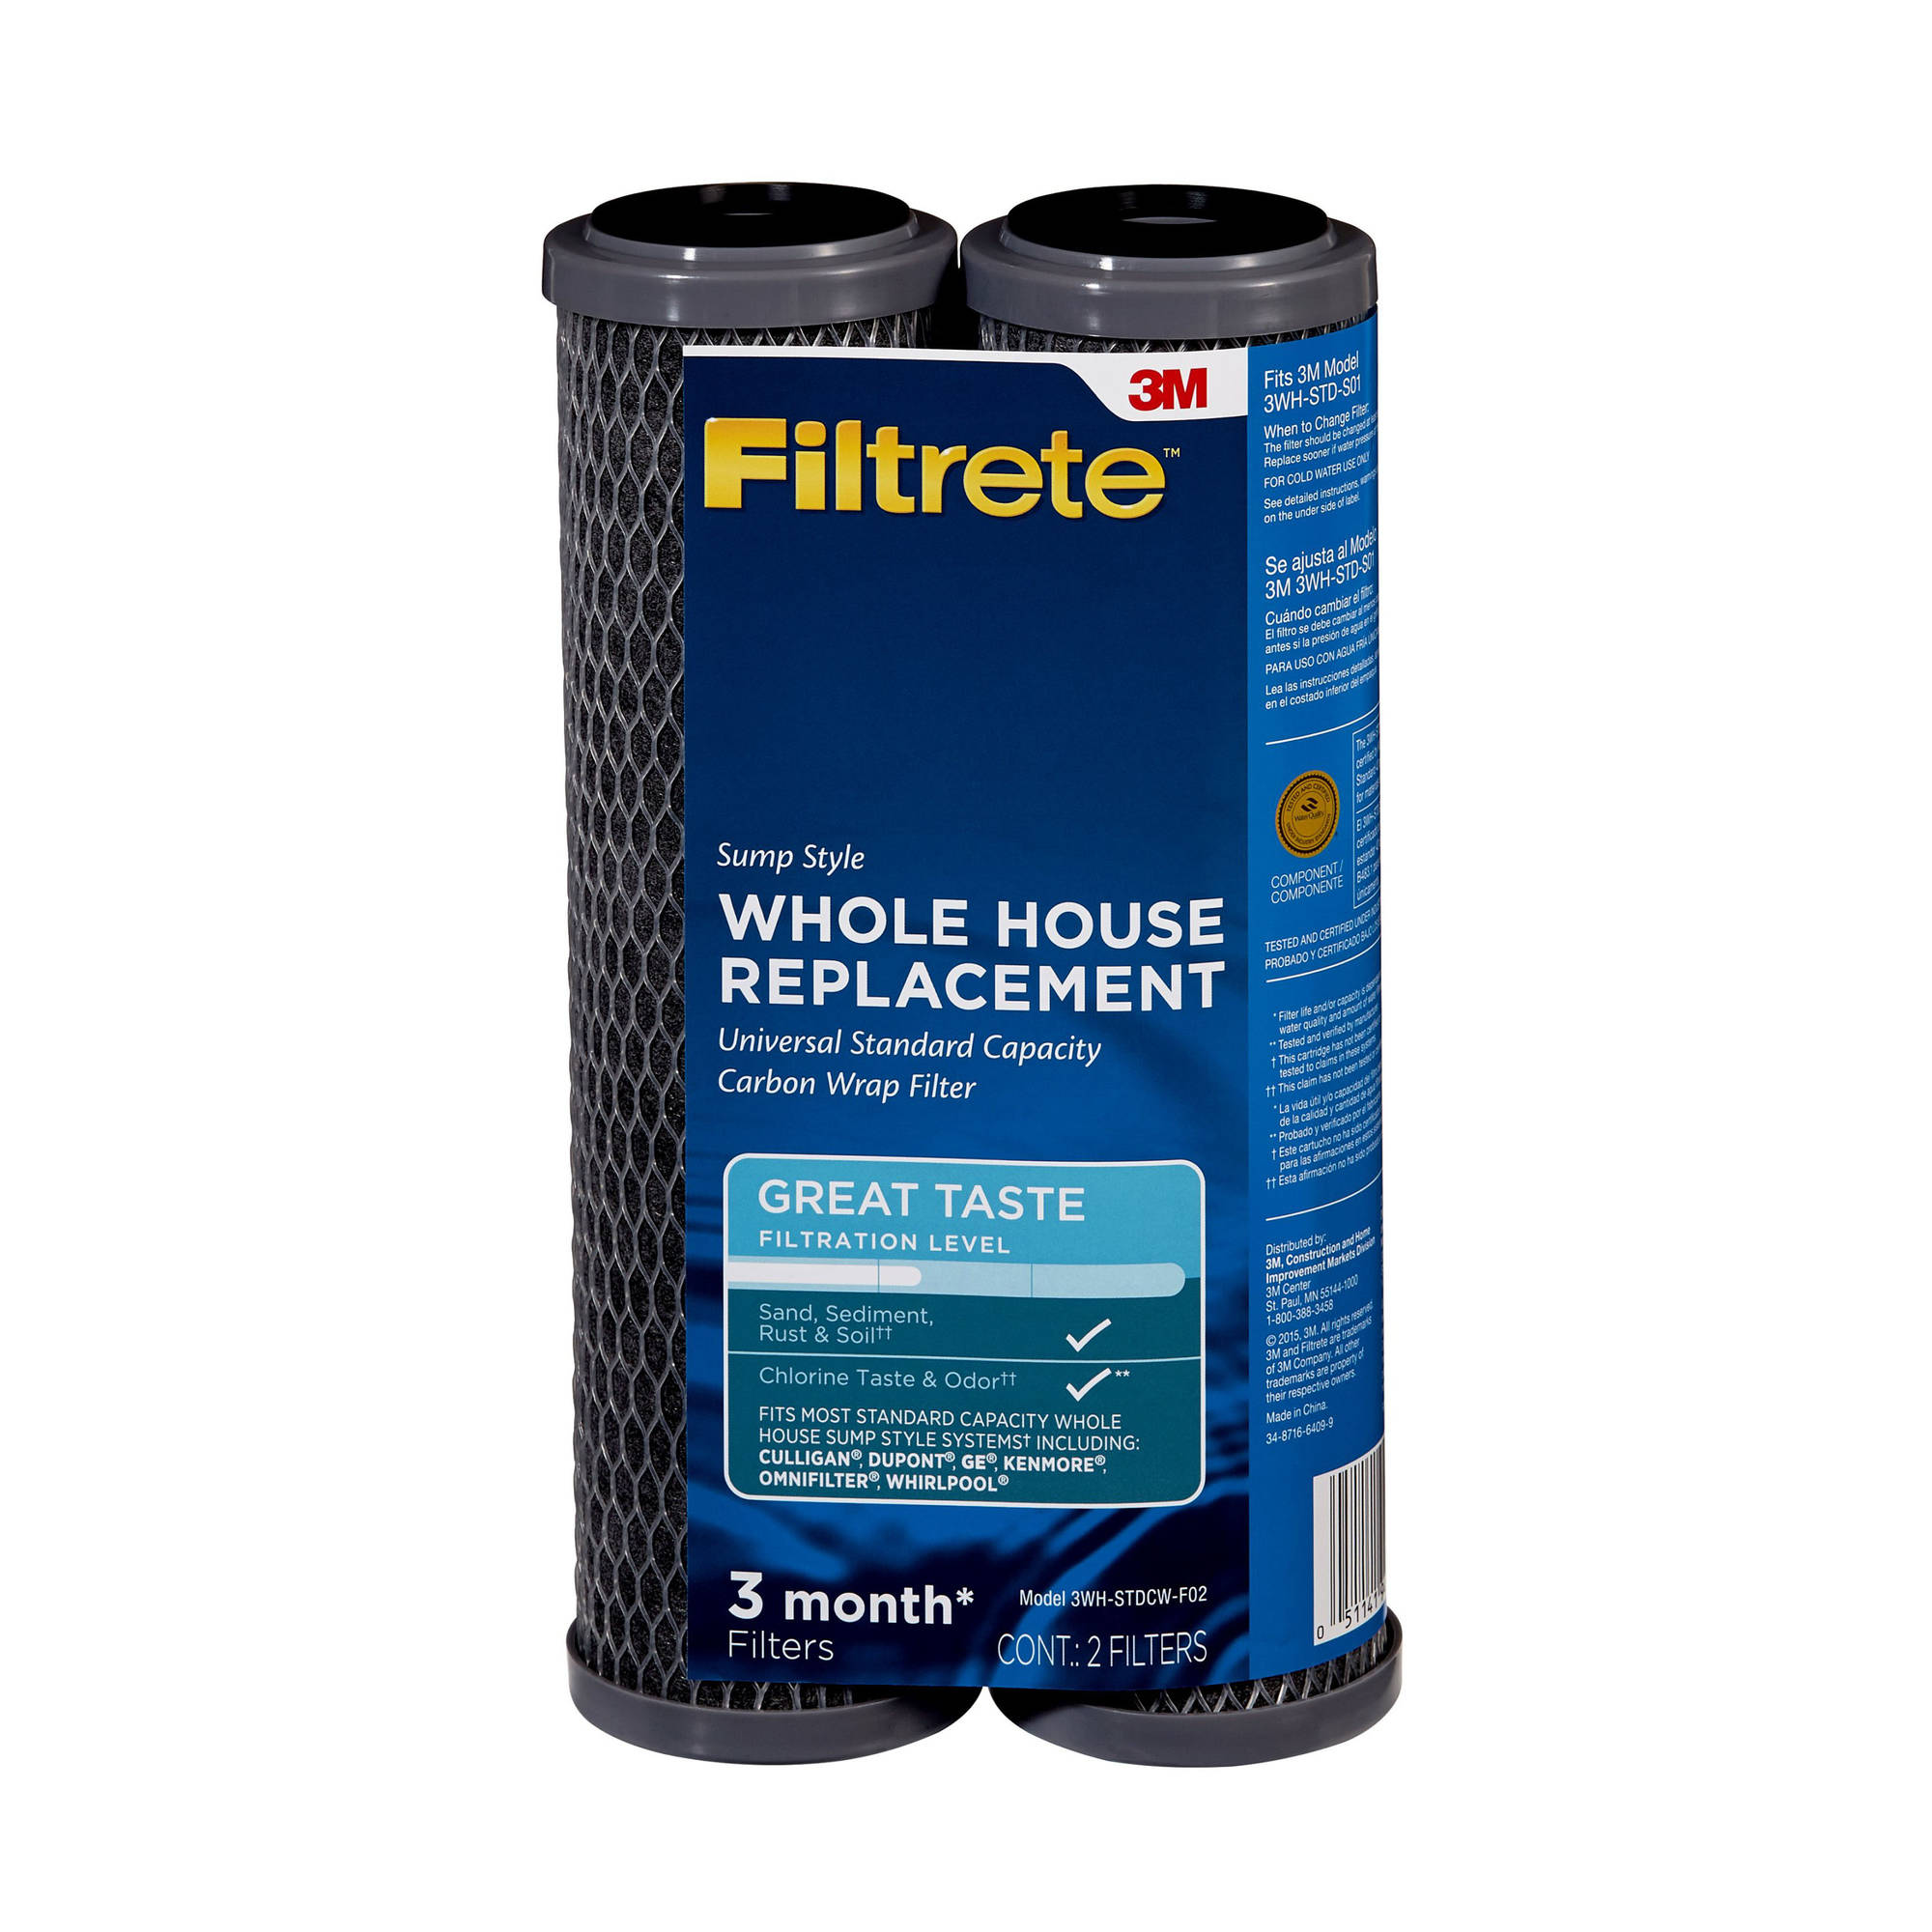 "Filtrete"" Standard Capacity, Carbon Wrap Replacement Filter, Sump Style (sediment, CTO) - 2 pack"